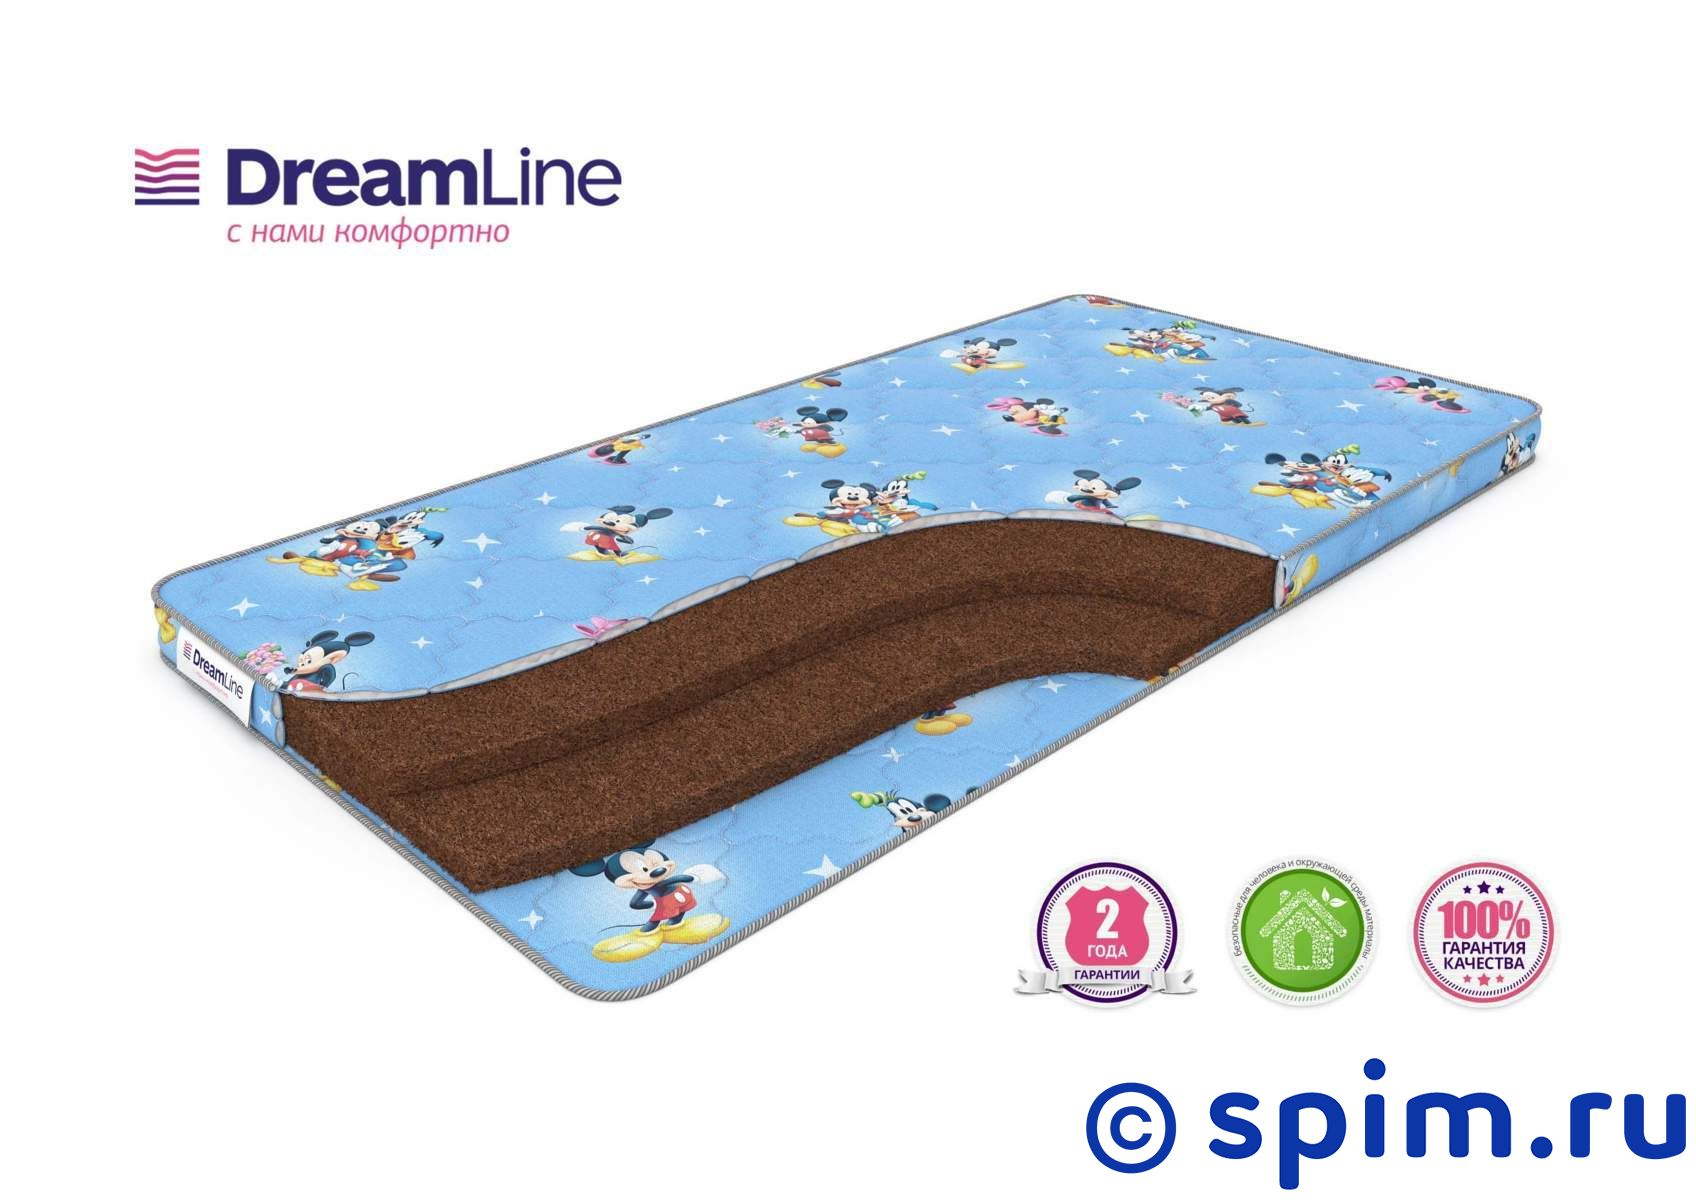 Детский матрас DreamLine BabyDream 6 80х200 см